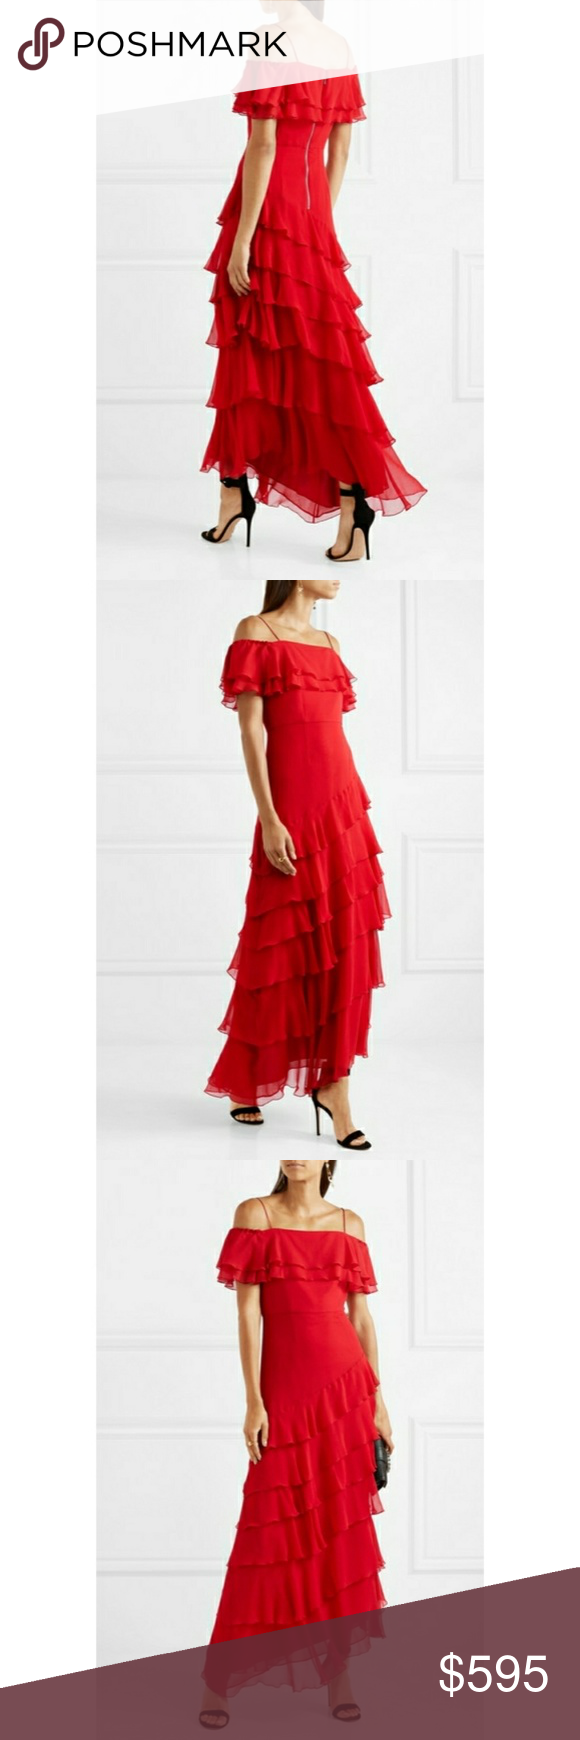 Elioisa Ruffled Off-the-shoulder Silk-chiffon Gown - Red Alice & Olivia Low Shipping For Sale Cheap Pay With Visa Best Seller Sale Online Clearance Footaction Low Price Fee Shipping For Sale 3yHpmiWg5c